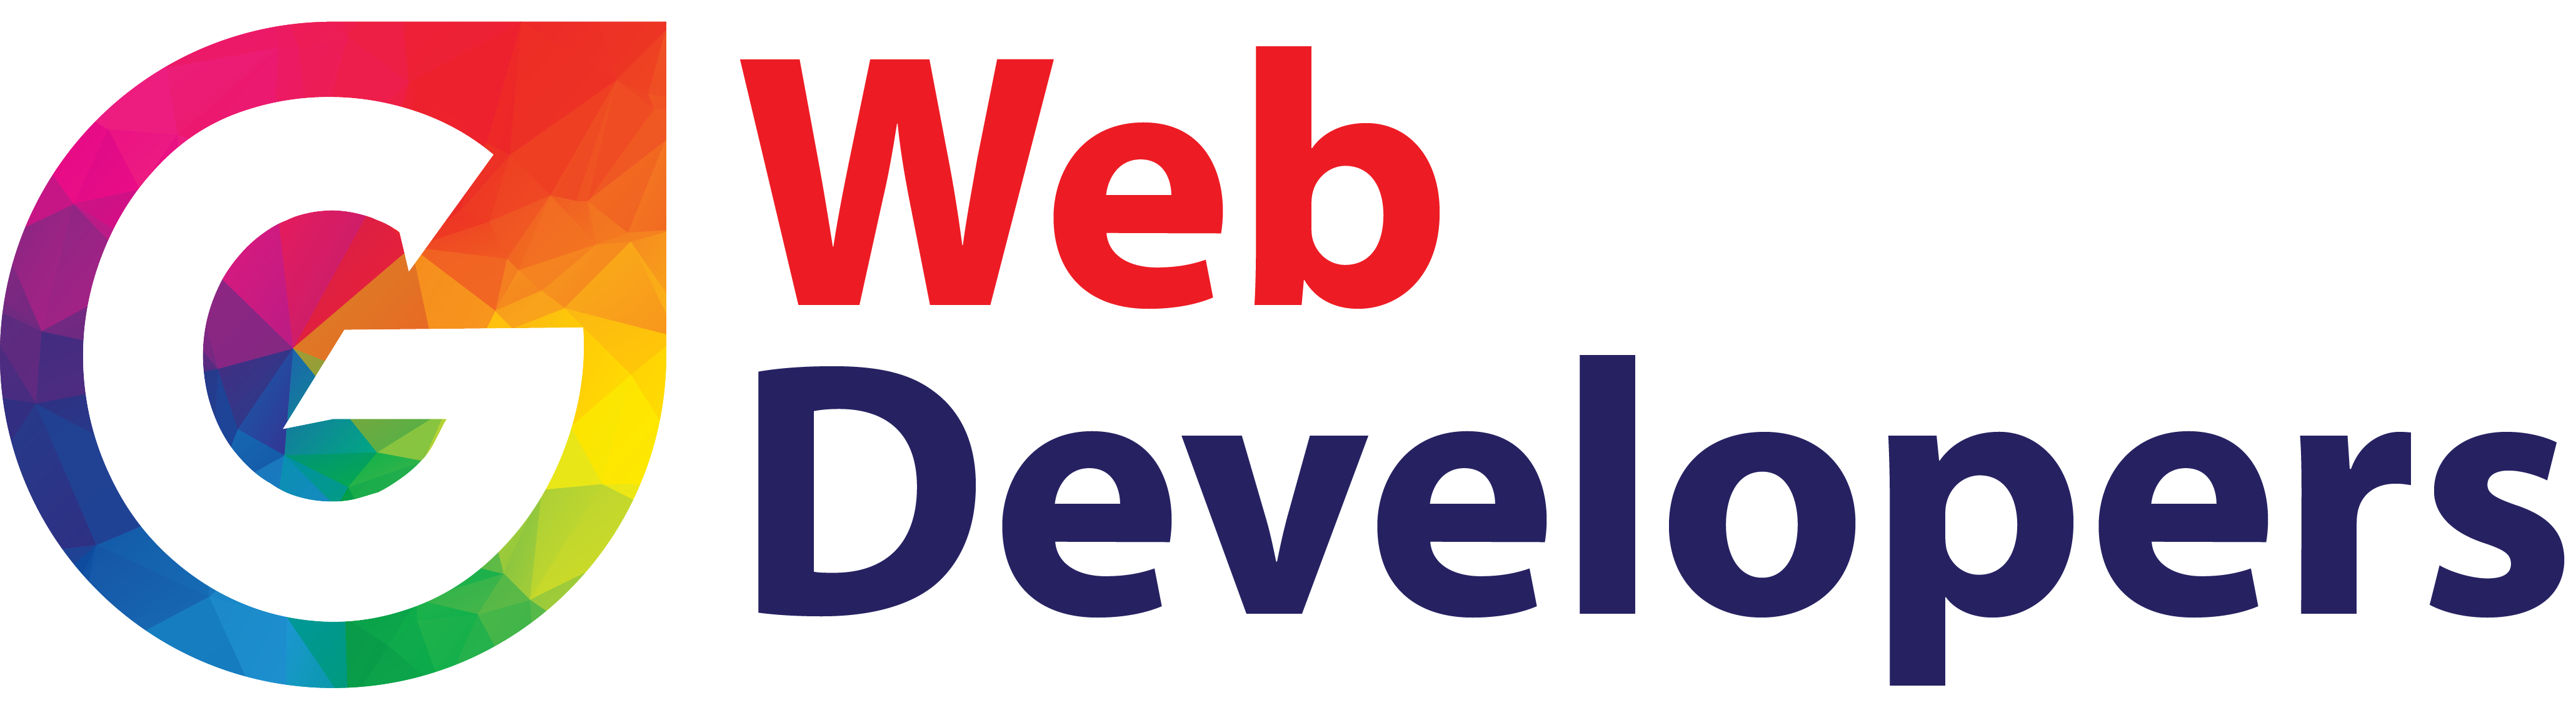 G-Web Developers